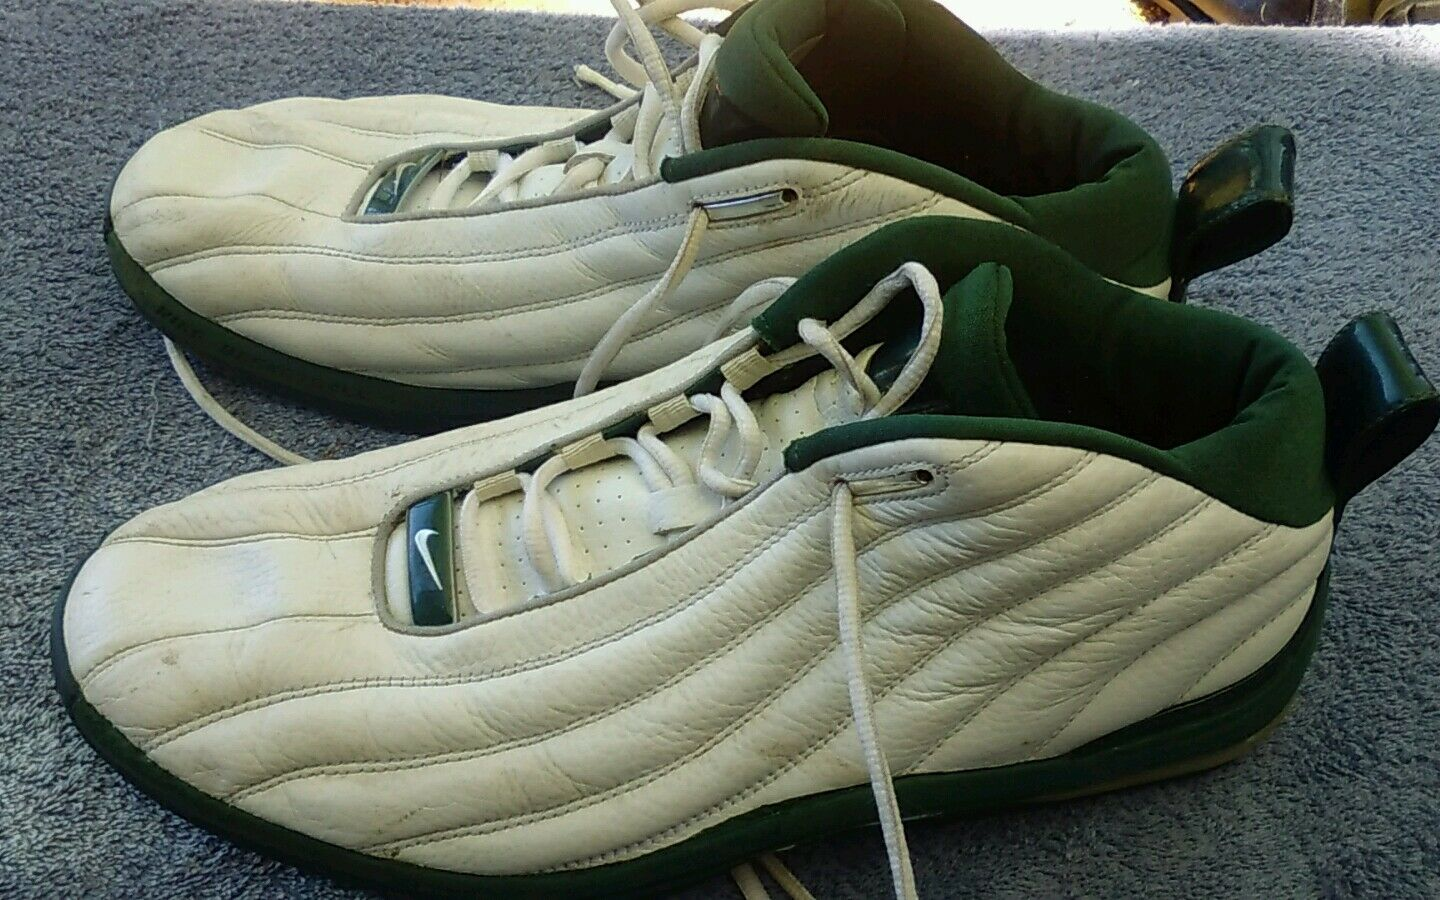 Vtg Nike og 2002 Air Max Chosen Green/white  Foamposite Men Price reduction Comfortable and good-looking